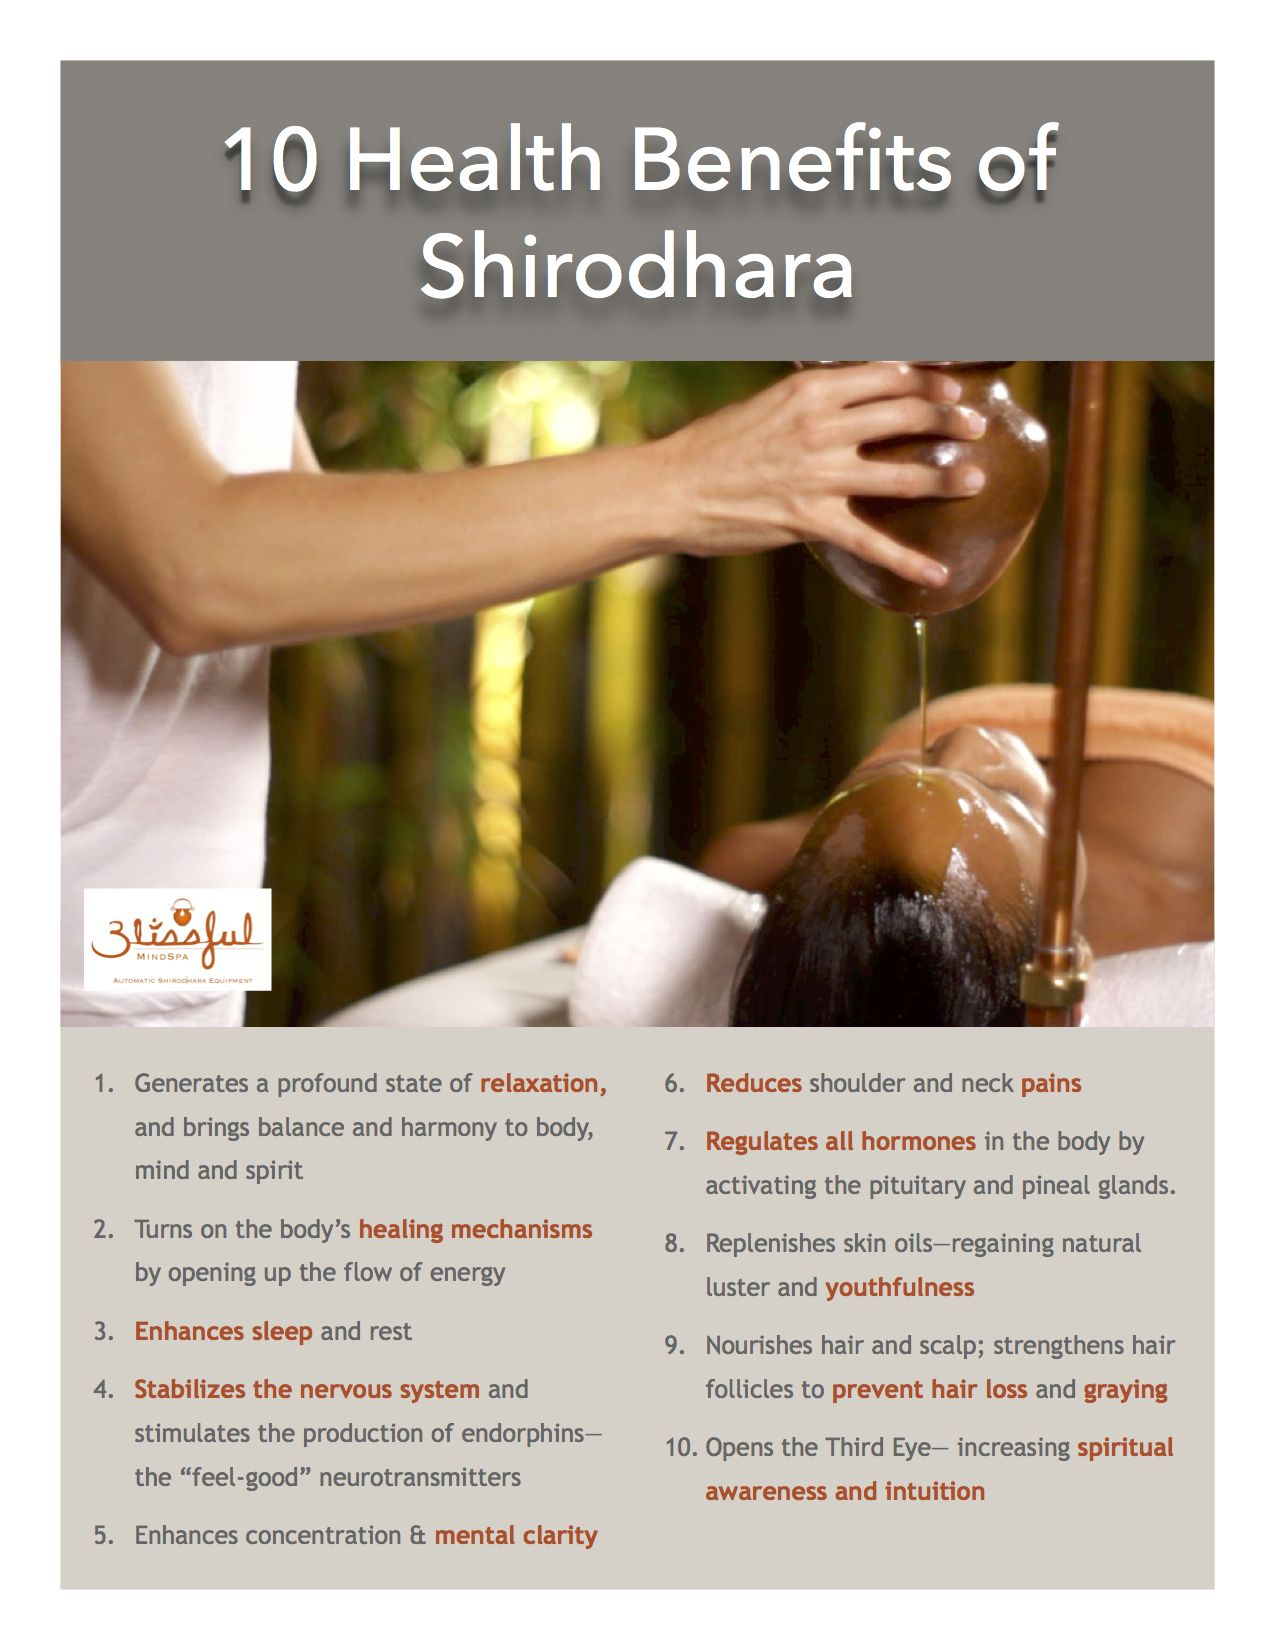 Ayurvedic massage - its types and applications in medicine